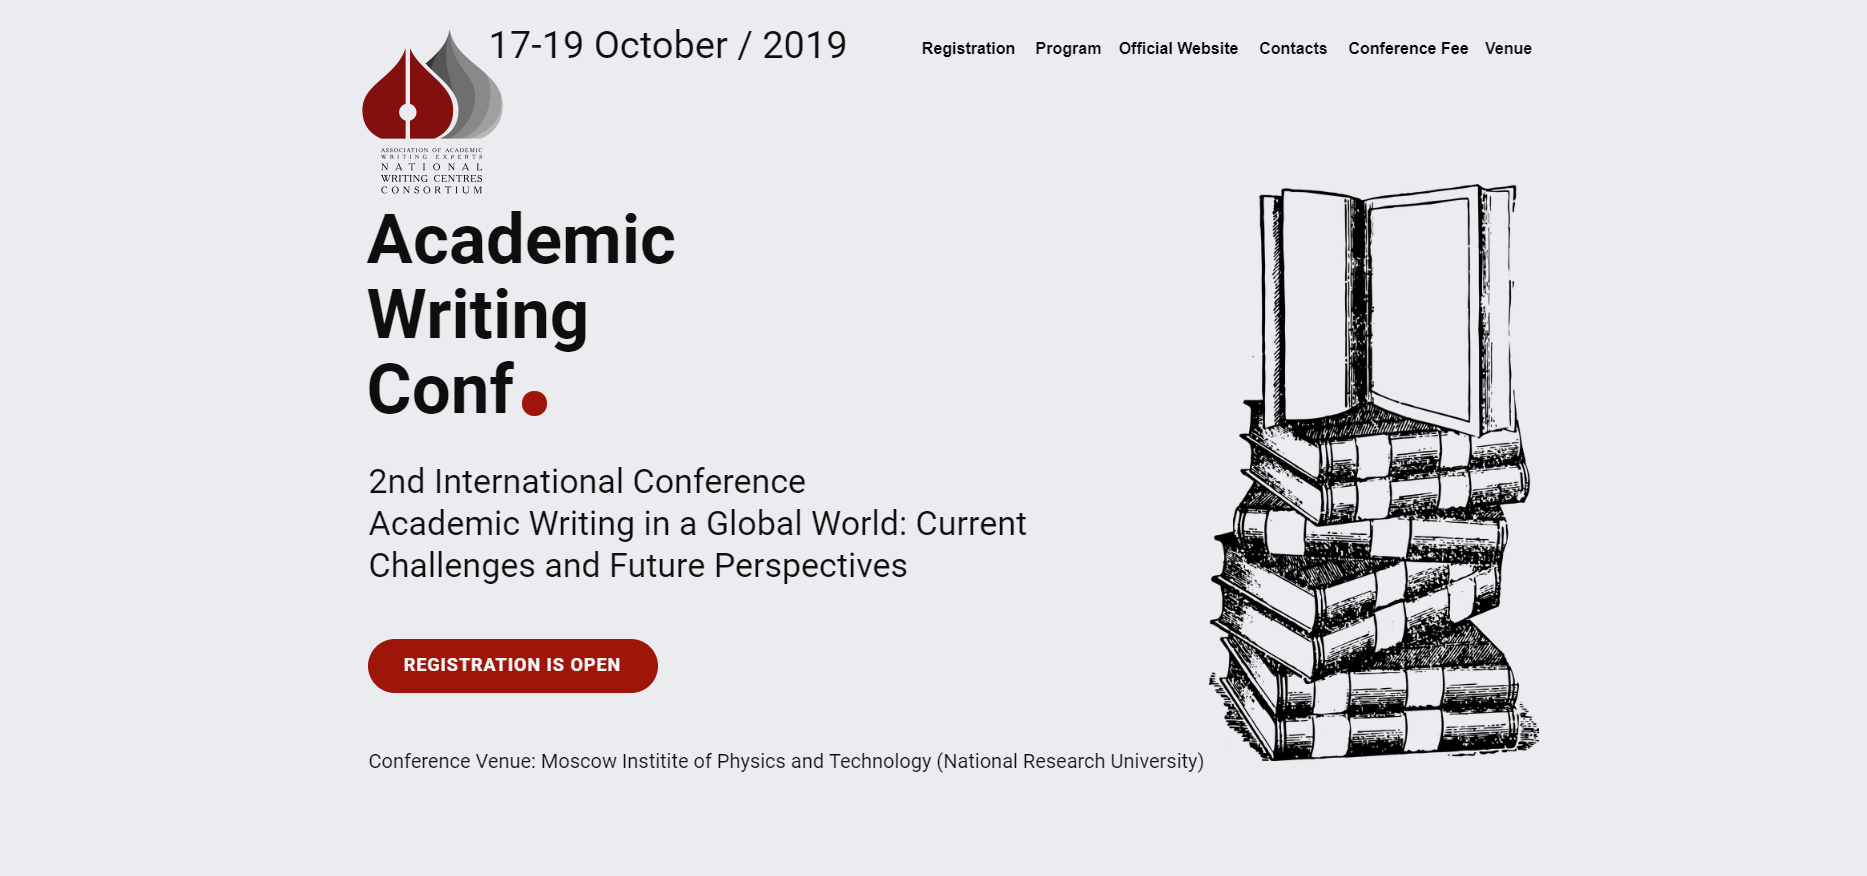 2nd International Conference in Academic Writing: Current Challenges and Future Perspectives |17-19 October, 2019